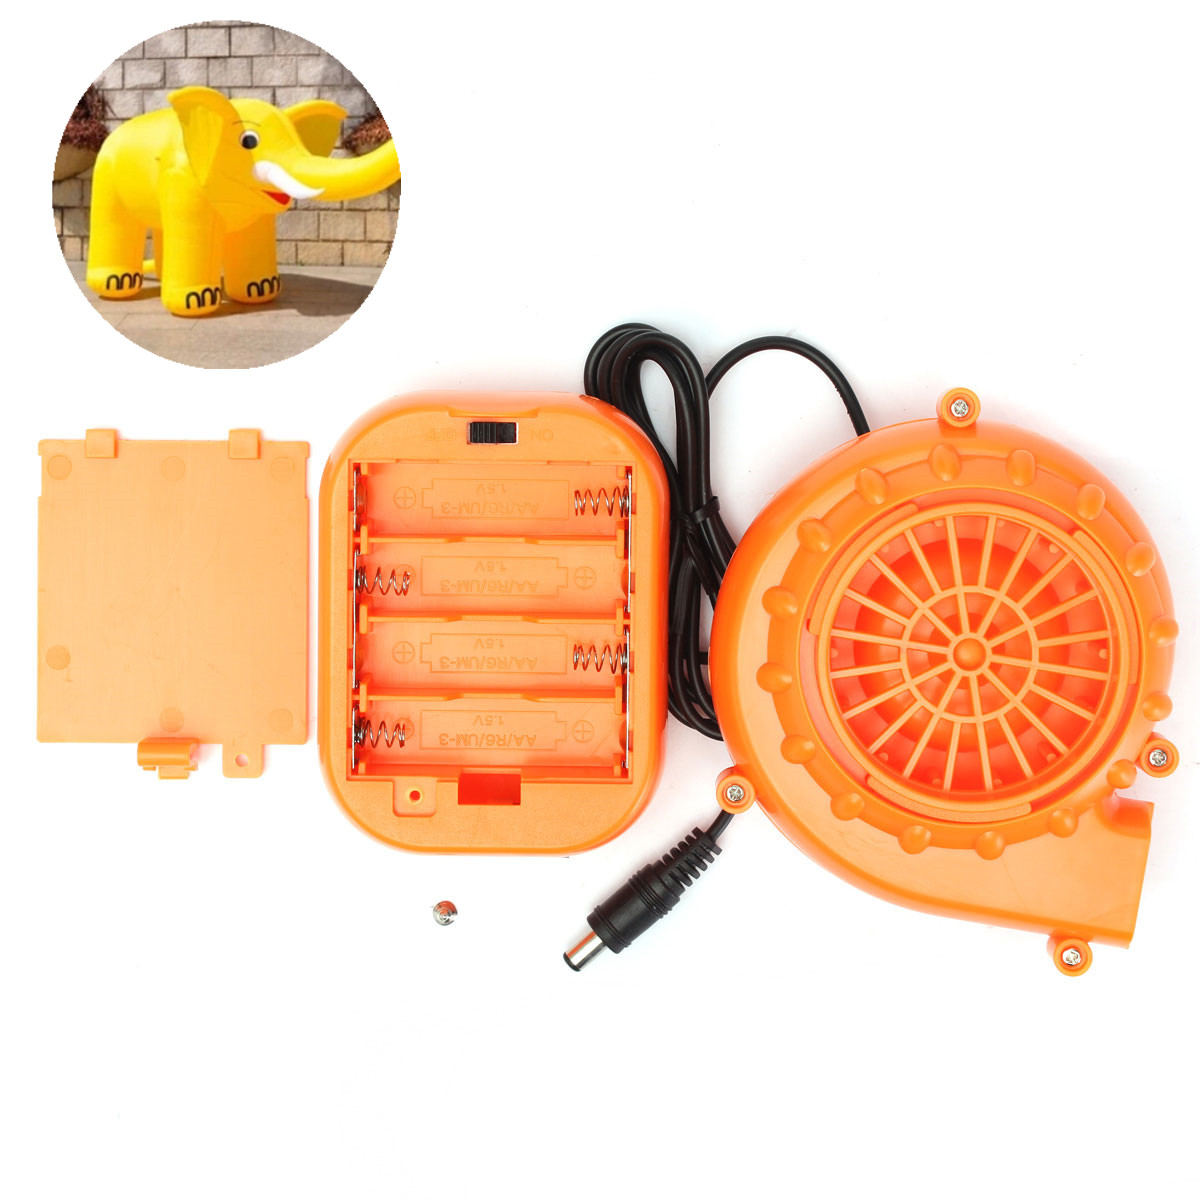 Orange Mini Fan Portable Fans Blower for Mascot Head Inflatable Costume 6V 4.8W Powered by Dry Battery